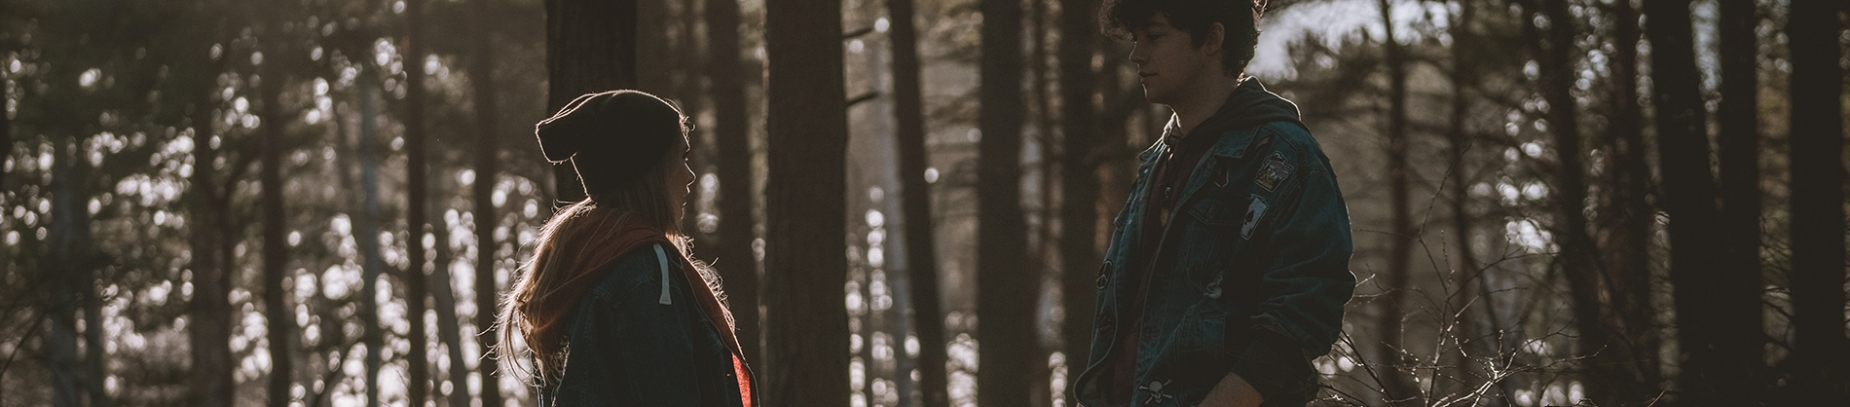 A girl and guy facing each other with a forest behind them